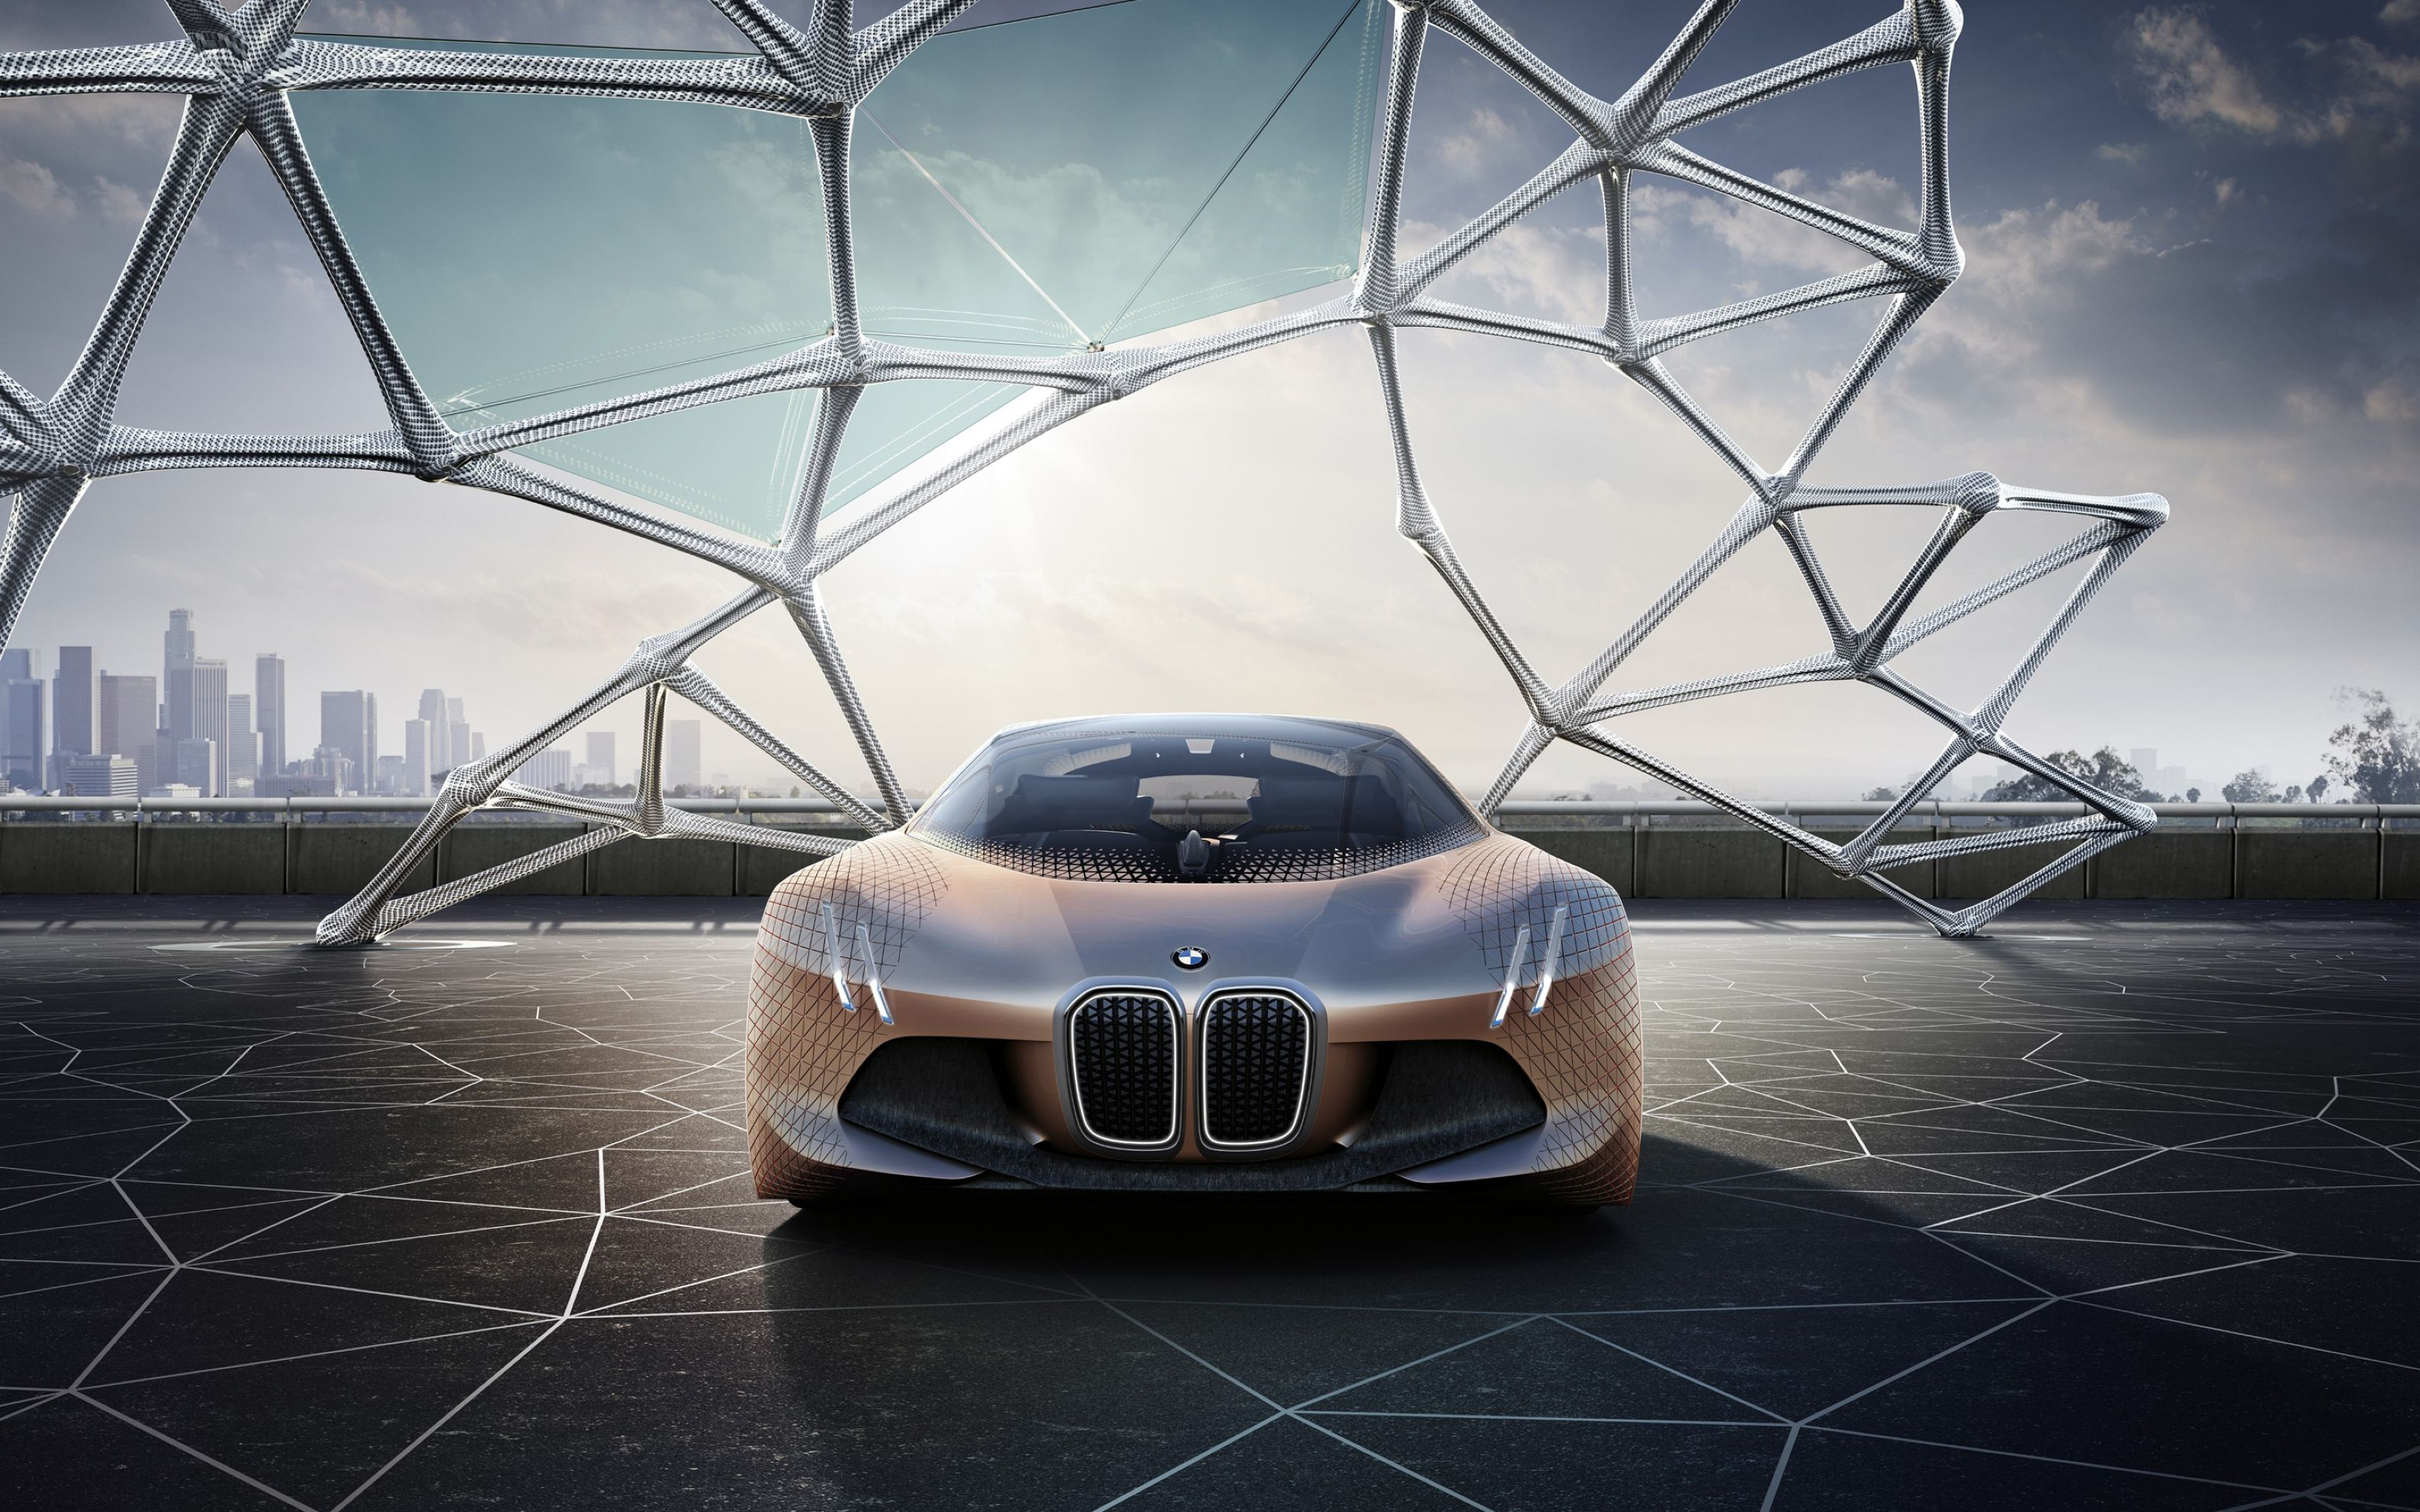 Download free HD BMW Vision Next 100 Concept 4k Wide Wallpaper, image